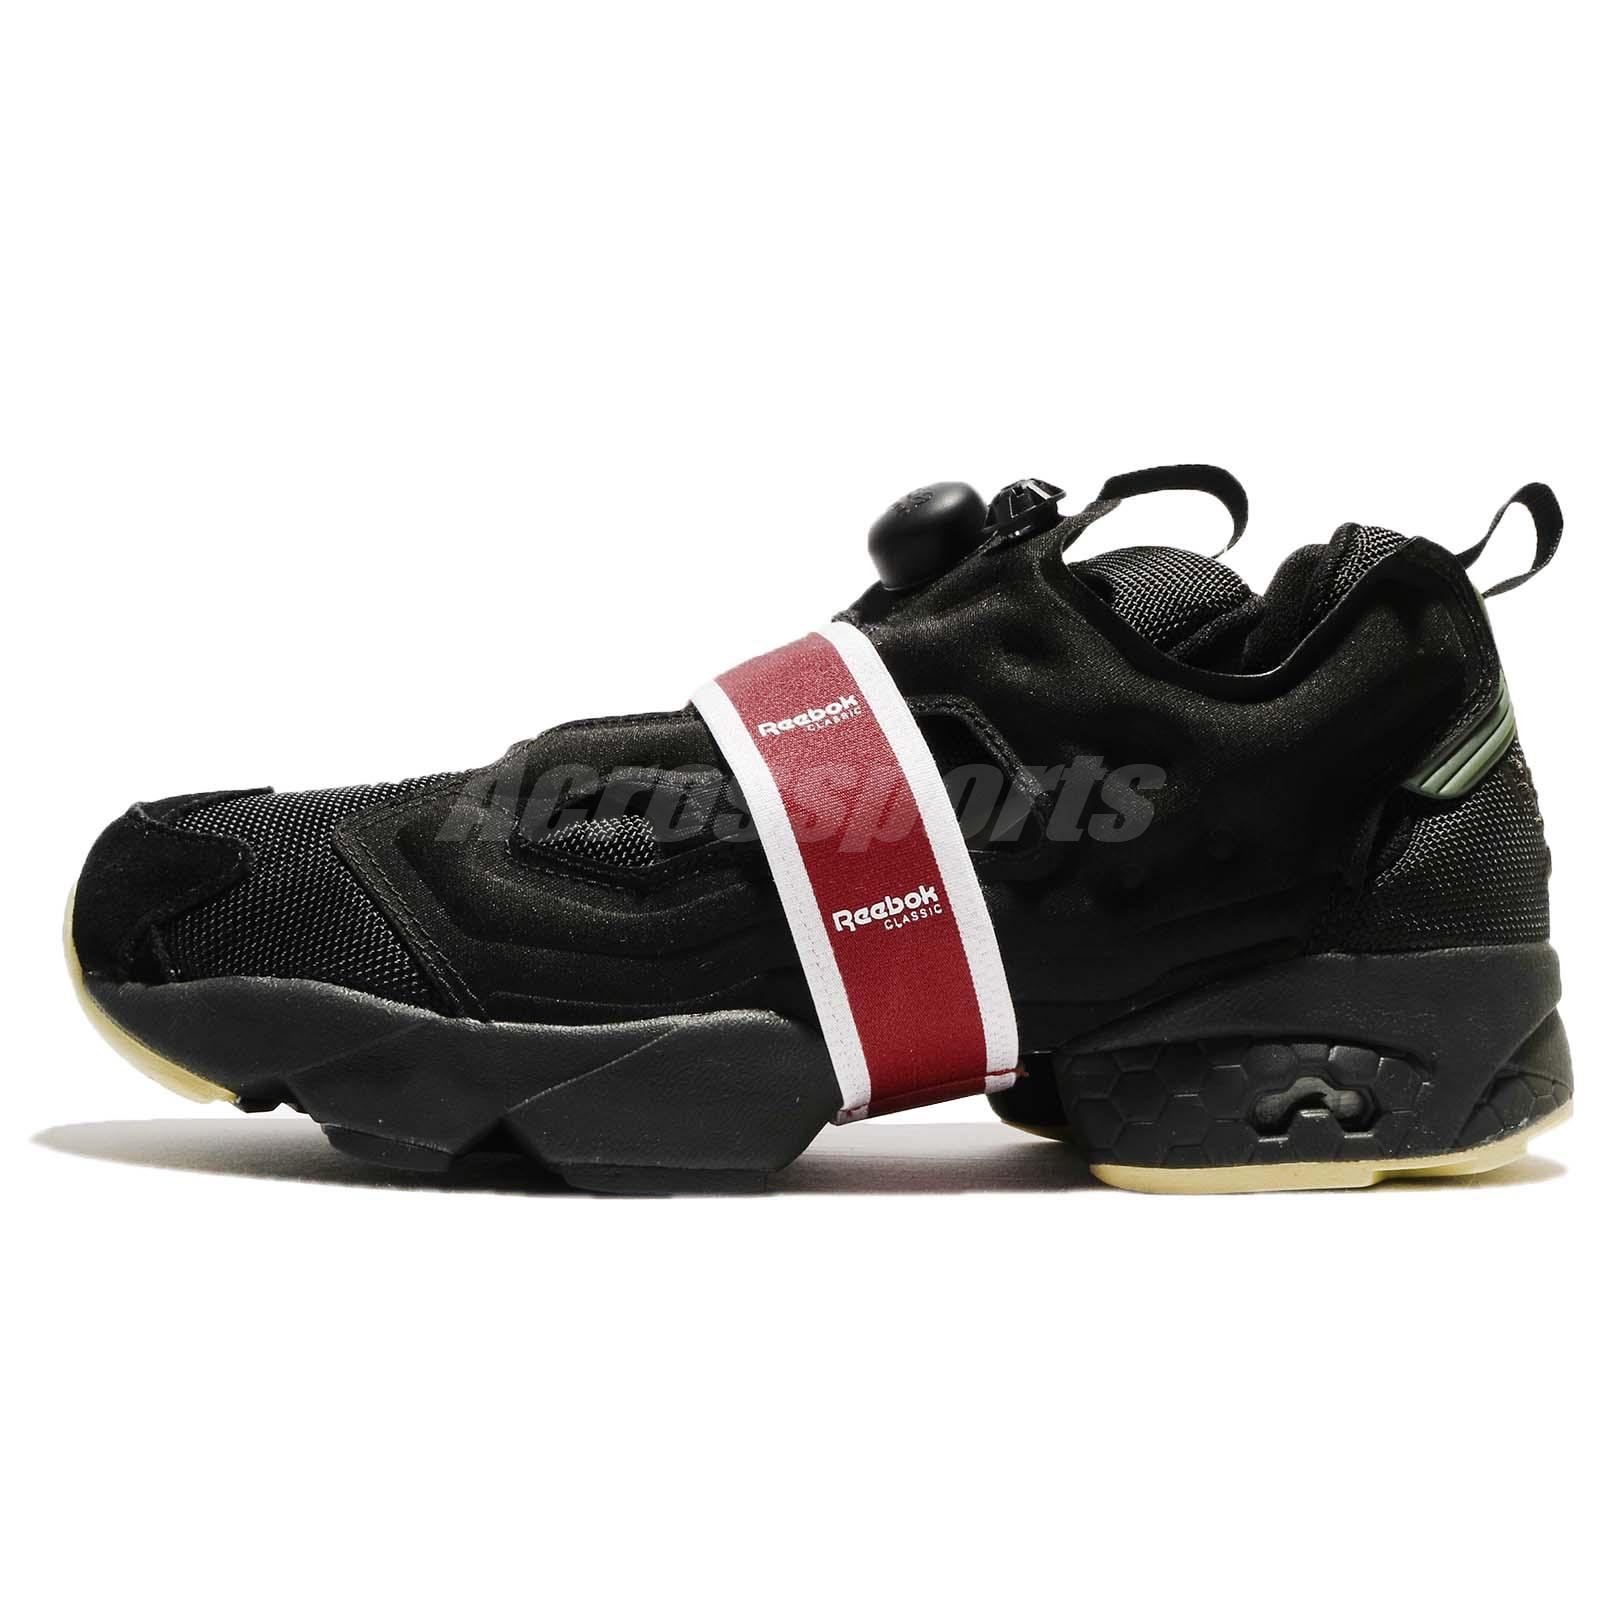 7a06e577f69 Reebok Instapump Fury OG MB Black Coal Red Men Running Shoes Sneakers BS9730